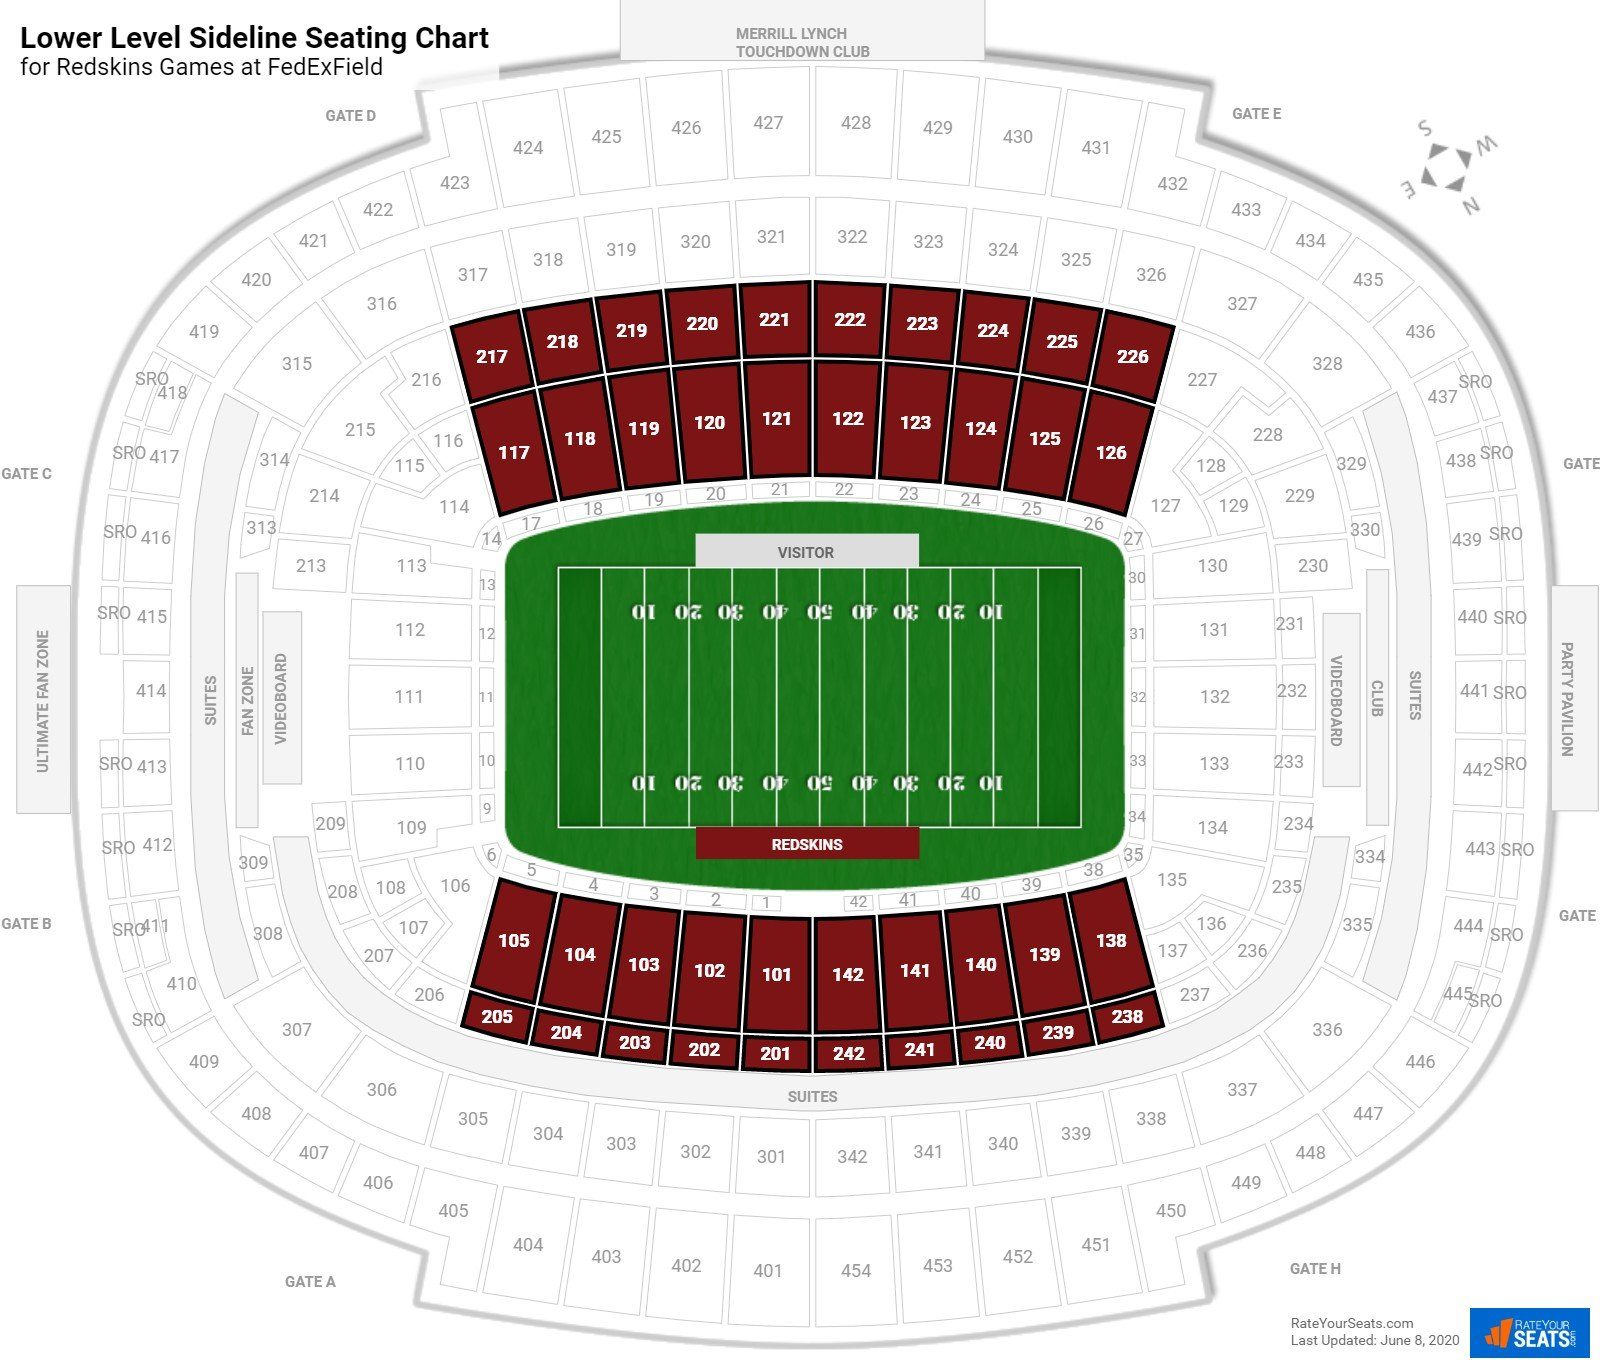 FedExField Lower Level Sideline seating chart